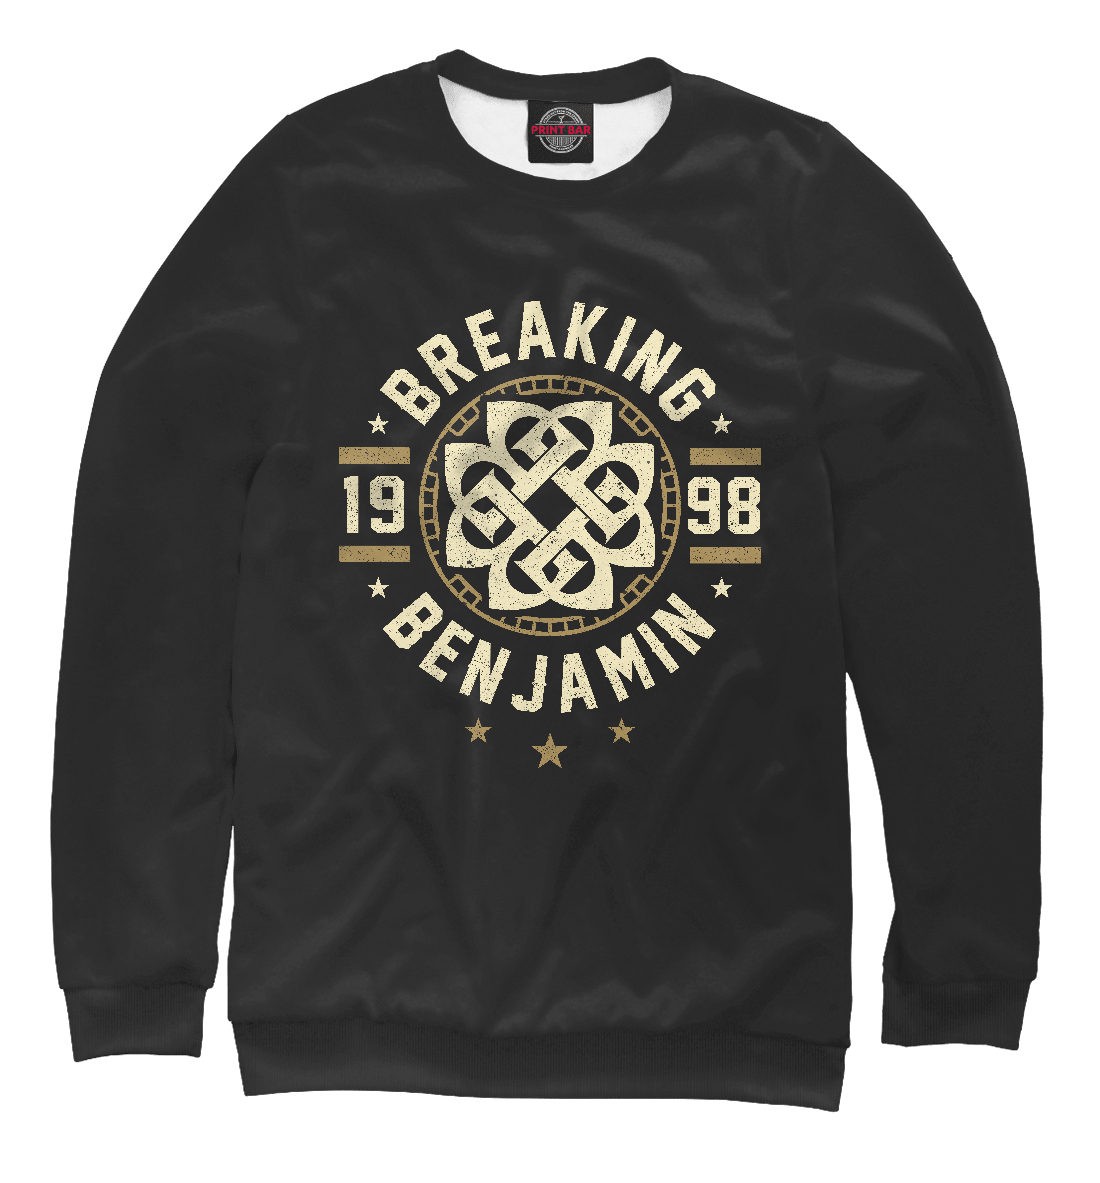 Купить Breaking Benjamin, Printbar, Свитшоты, MZK-591242-swi-2